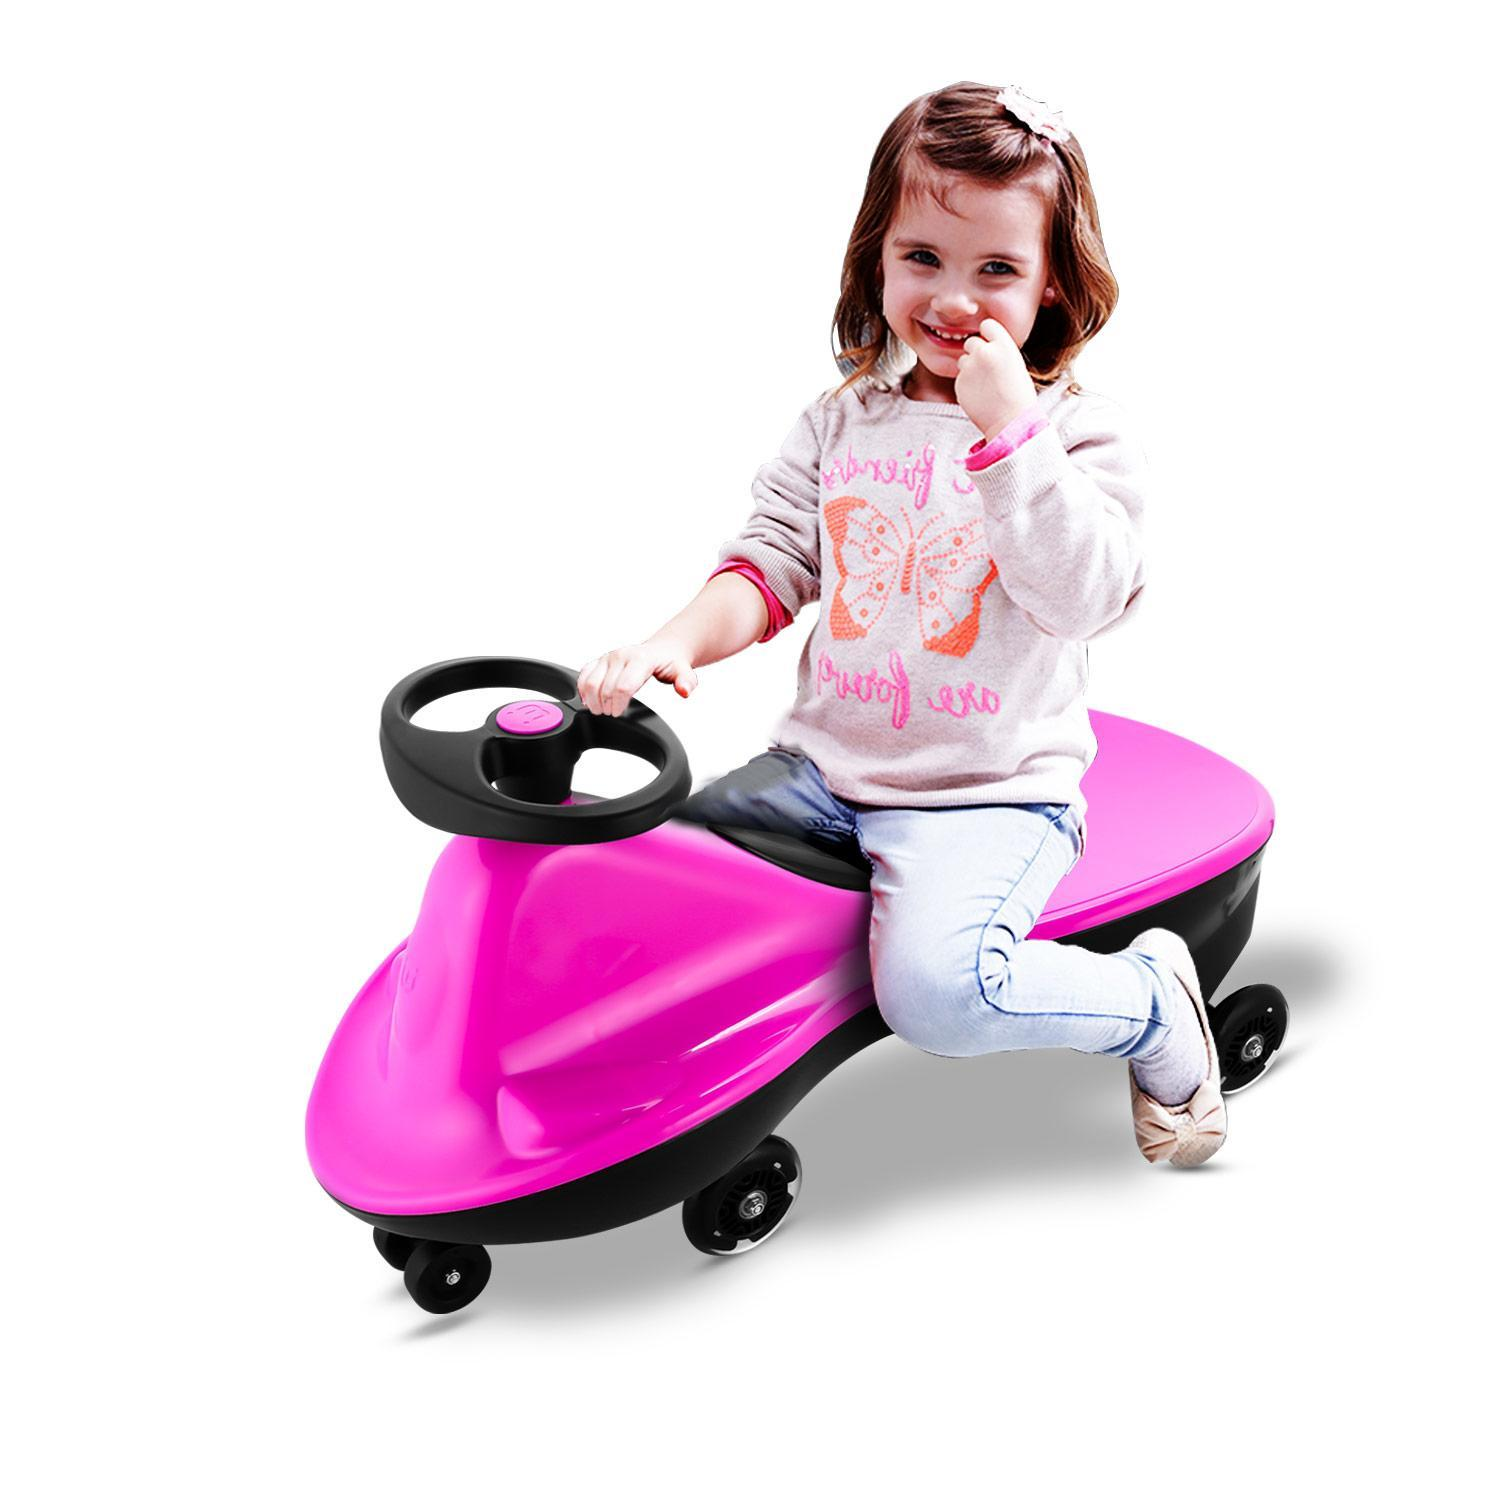 Baby Child Kids Ride on Toy, Ride on Wiggle Happy Car for Boys and Girls 3 + Safety Tested